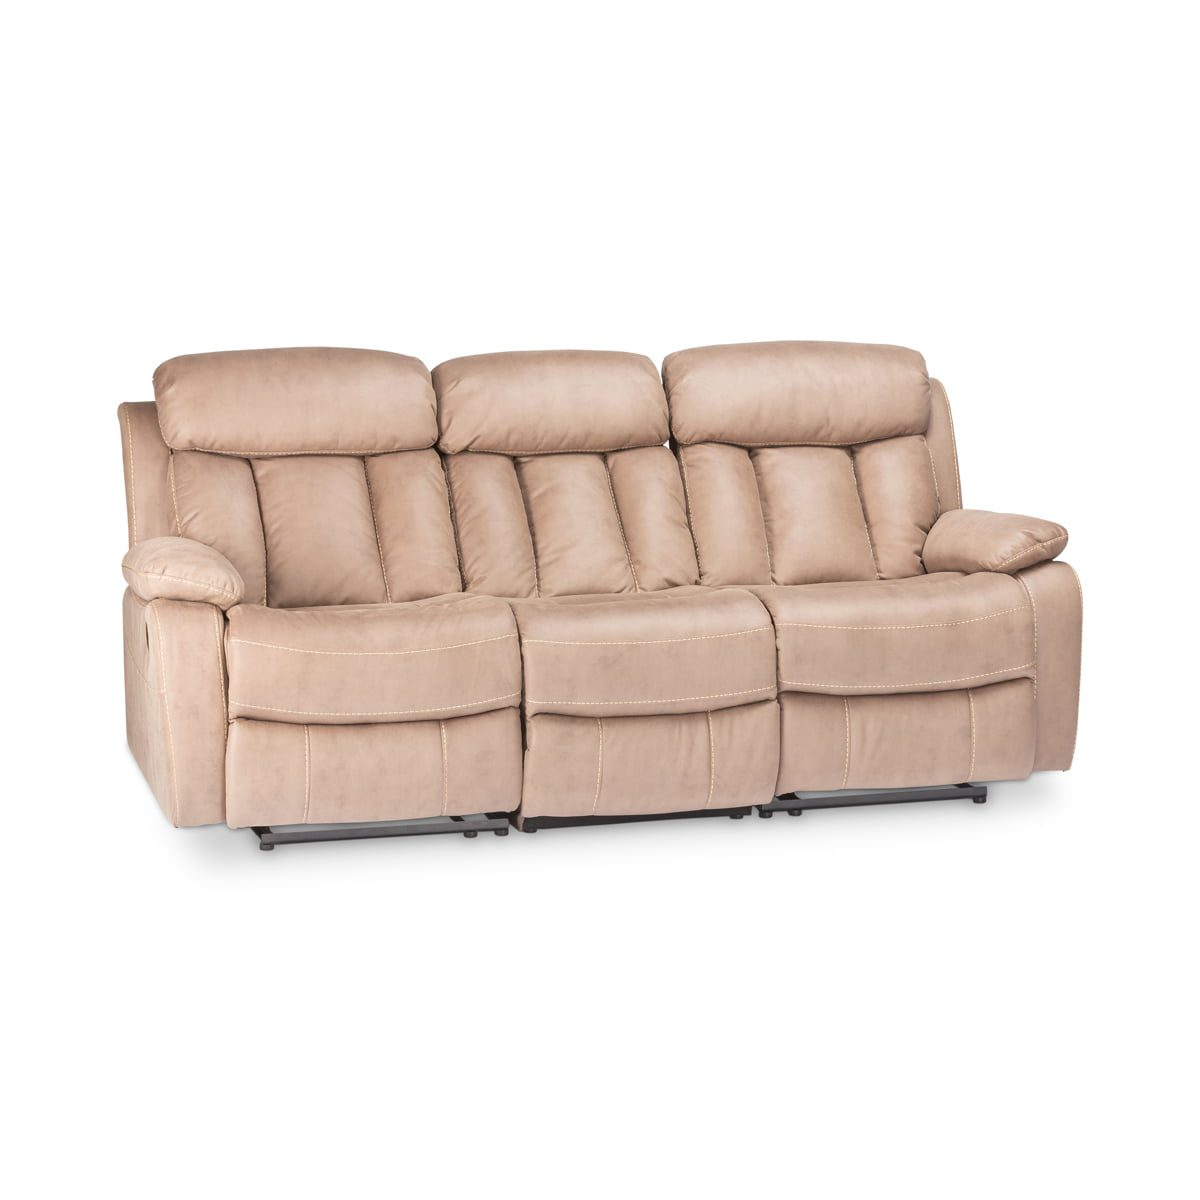 Junior Taupe 3 Seater Recliner